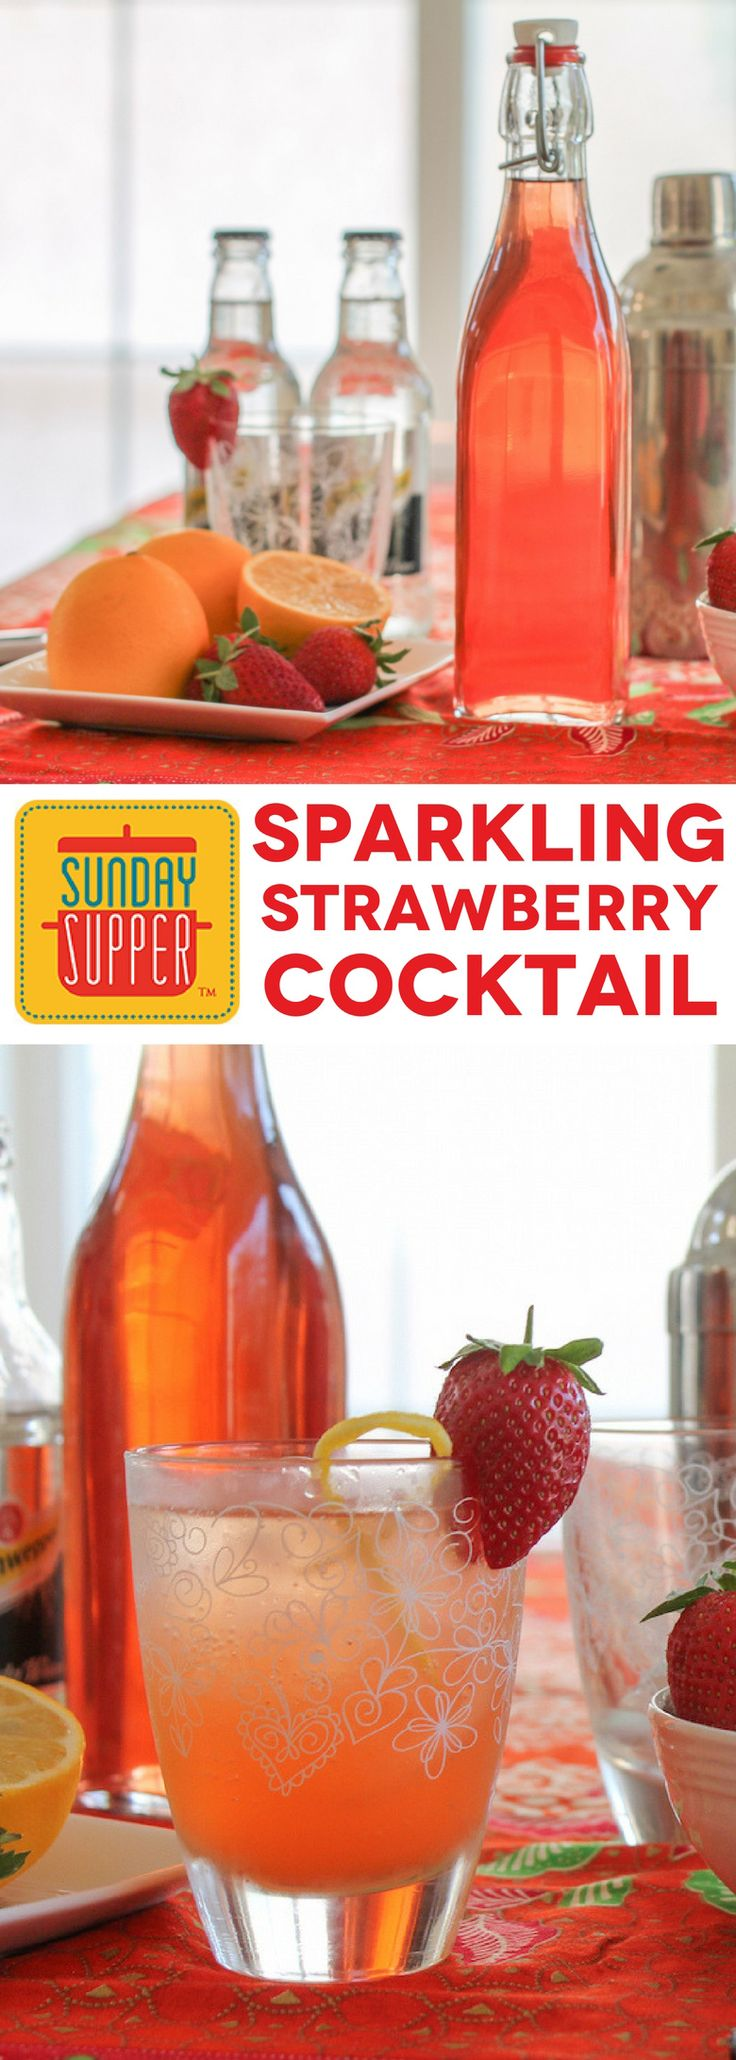 Preserve the color and flavor of sweet @Flastrawberries by making strawberry vodka, then make a sparkling Strawberry Cocktail to celebrate! #FLStrawberry #SundaySupper